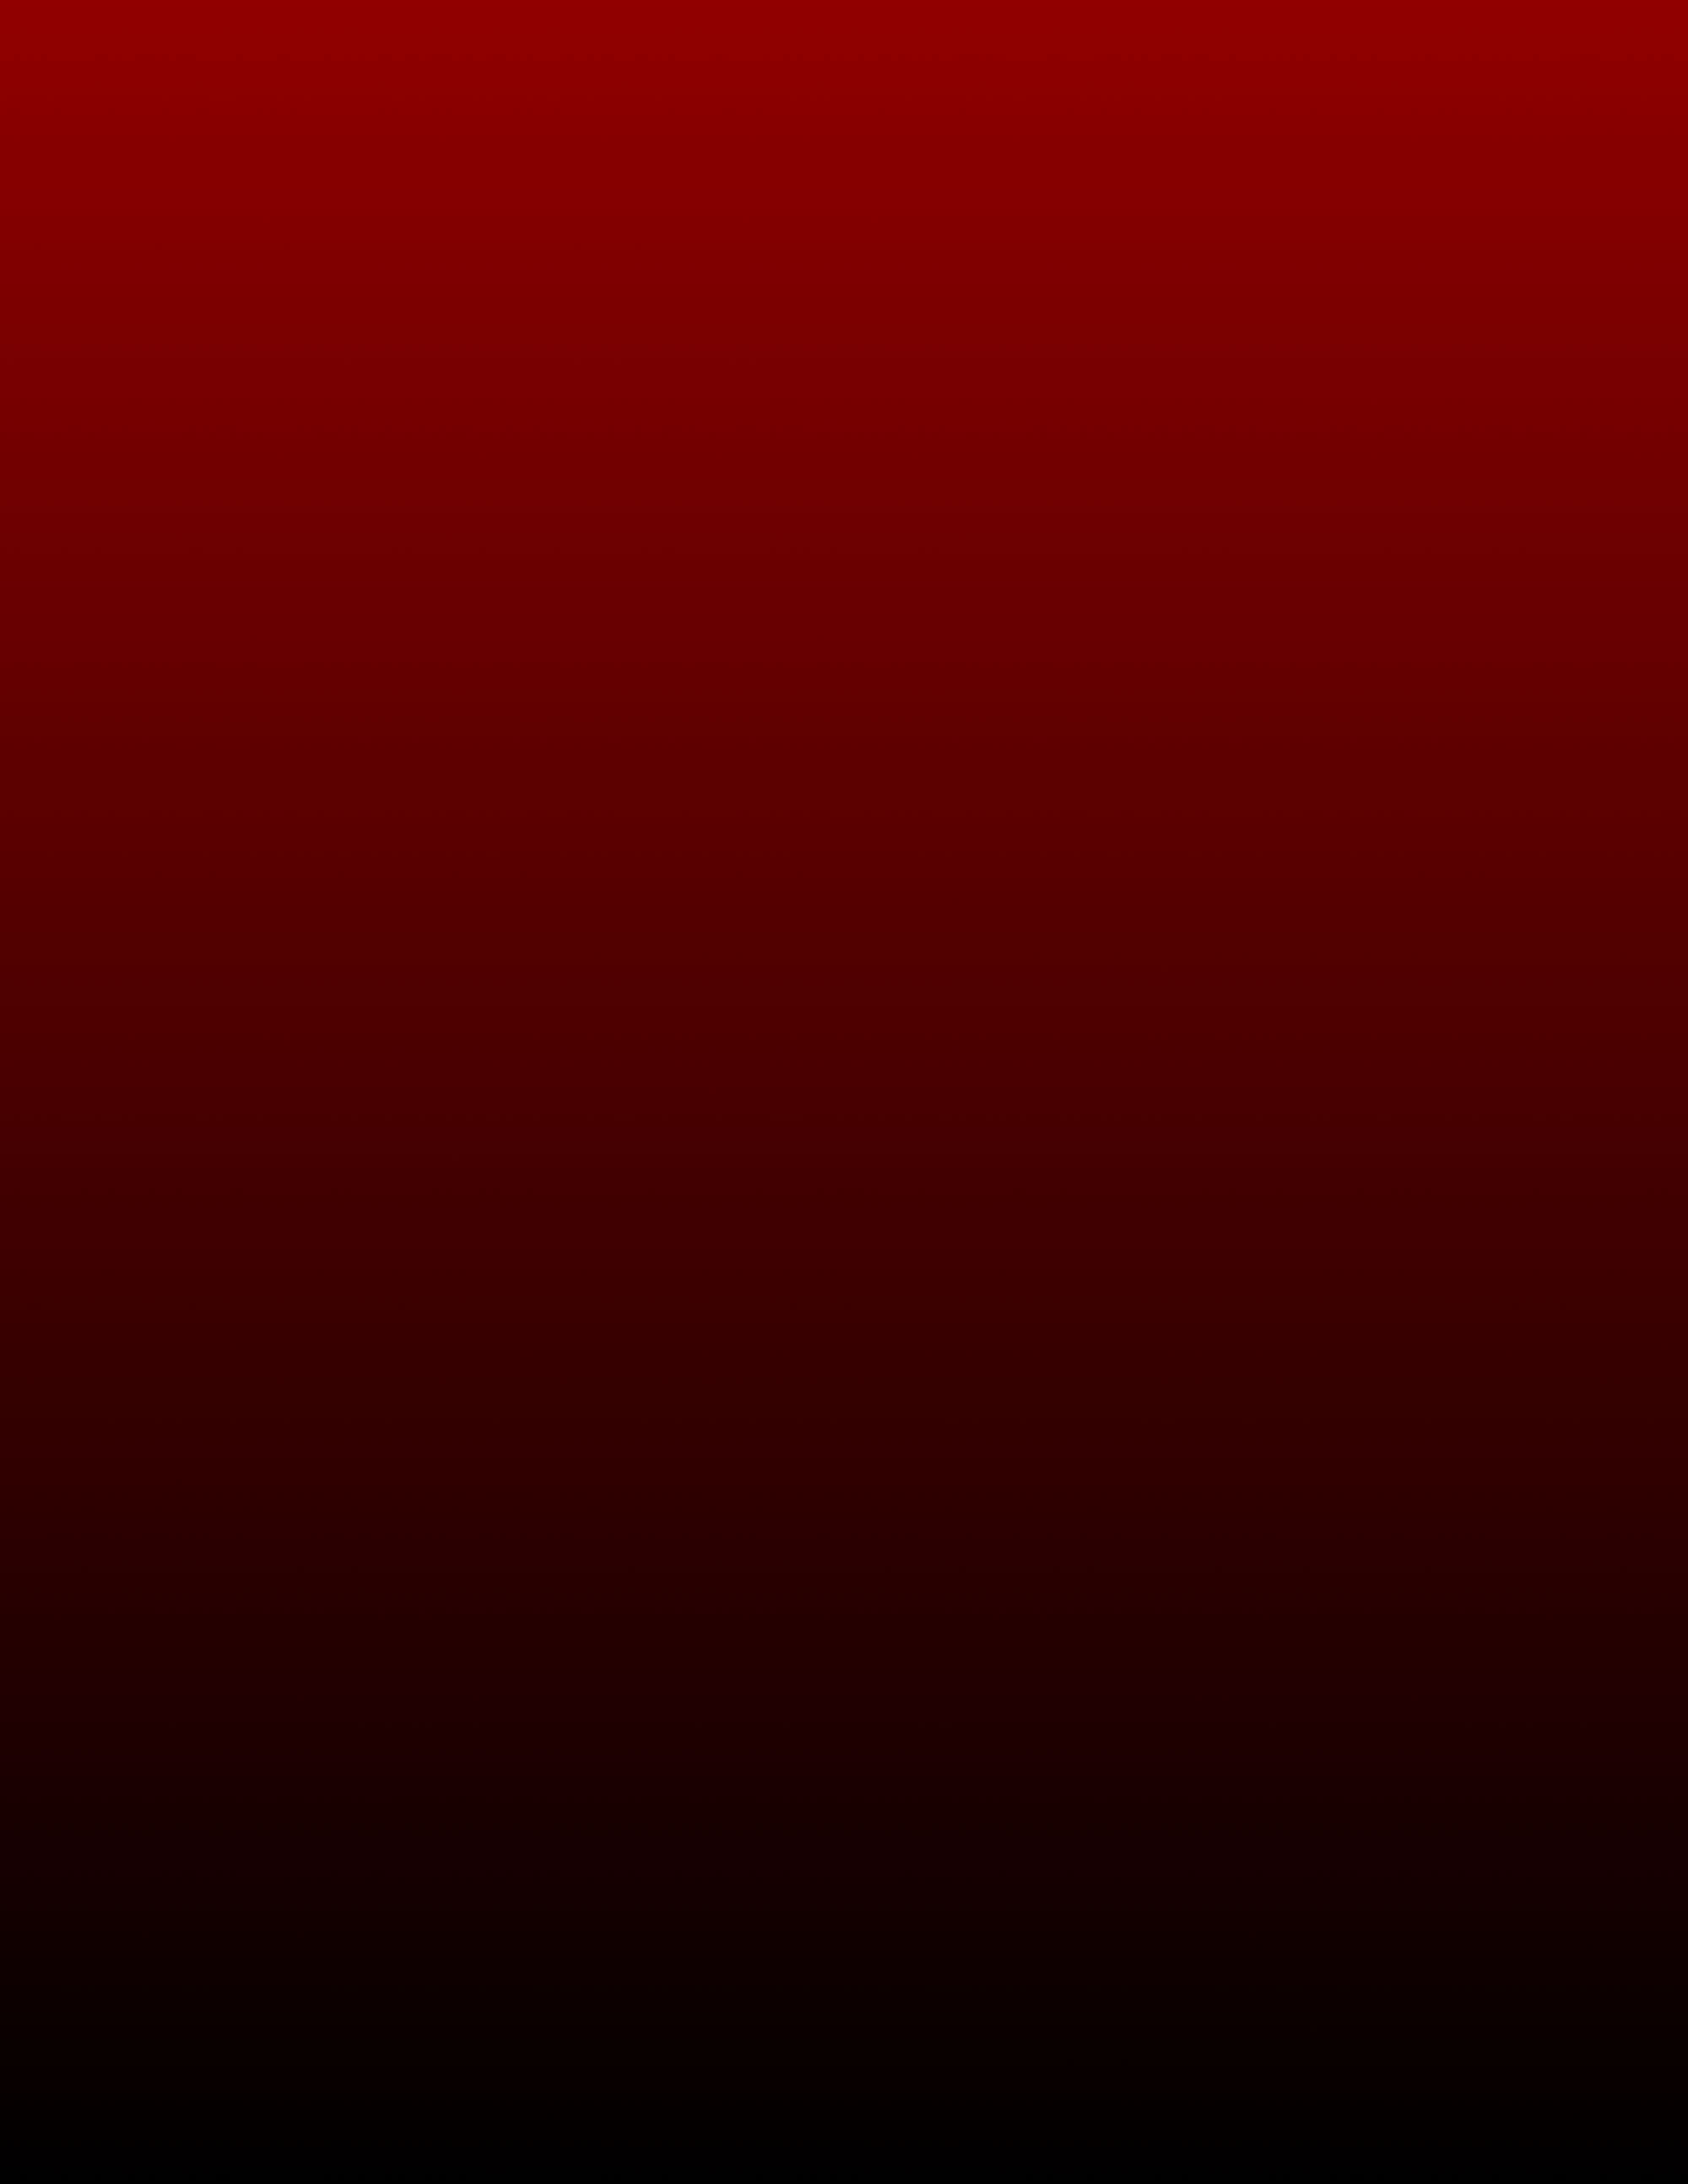 red and black gradient - photo #23